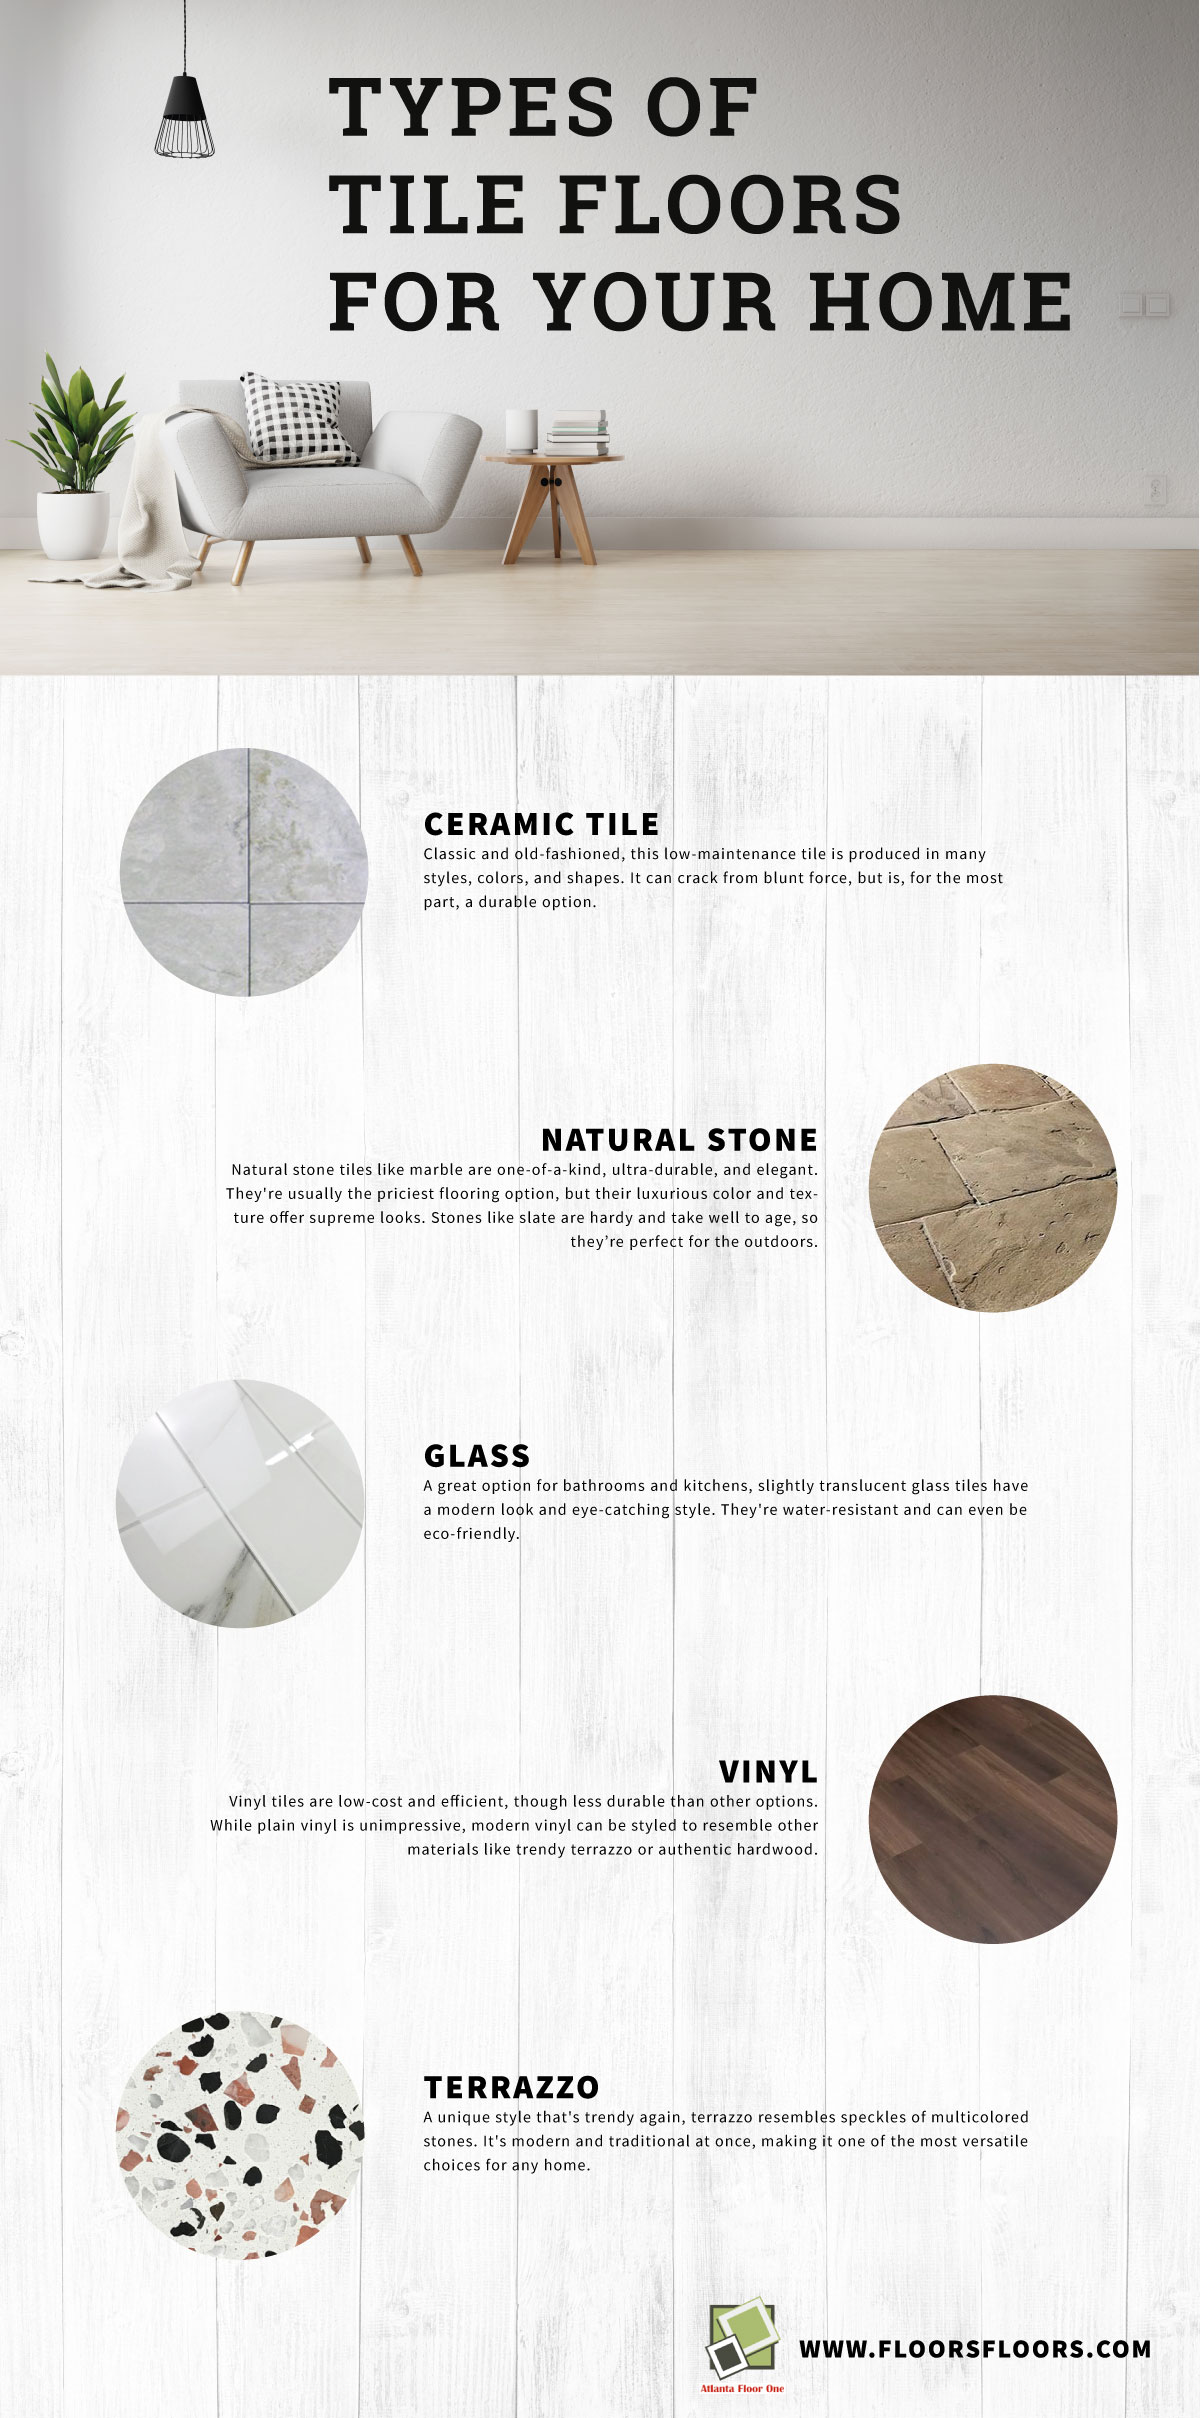 Types of Tile Floors for Your Home